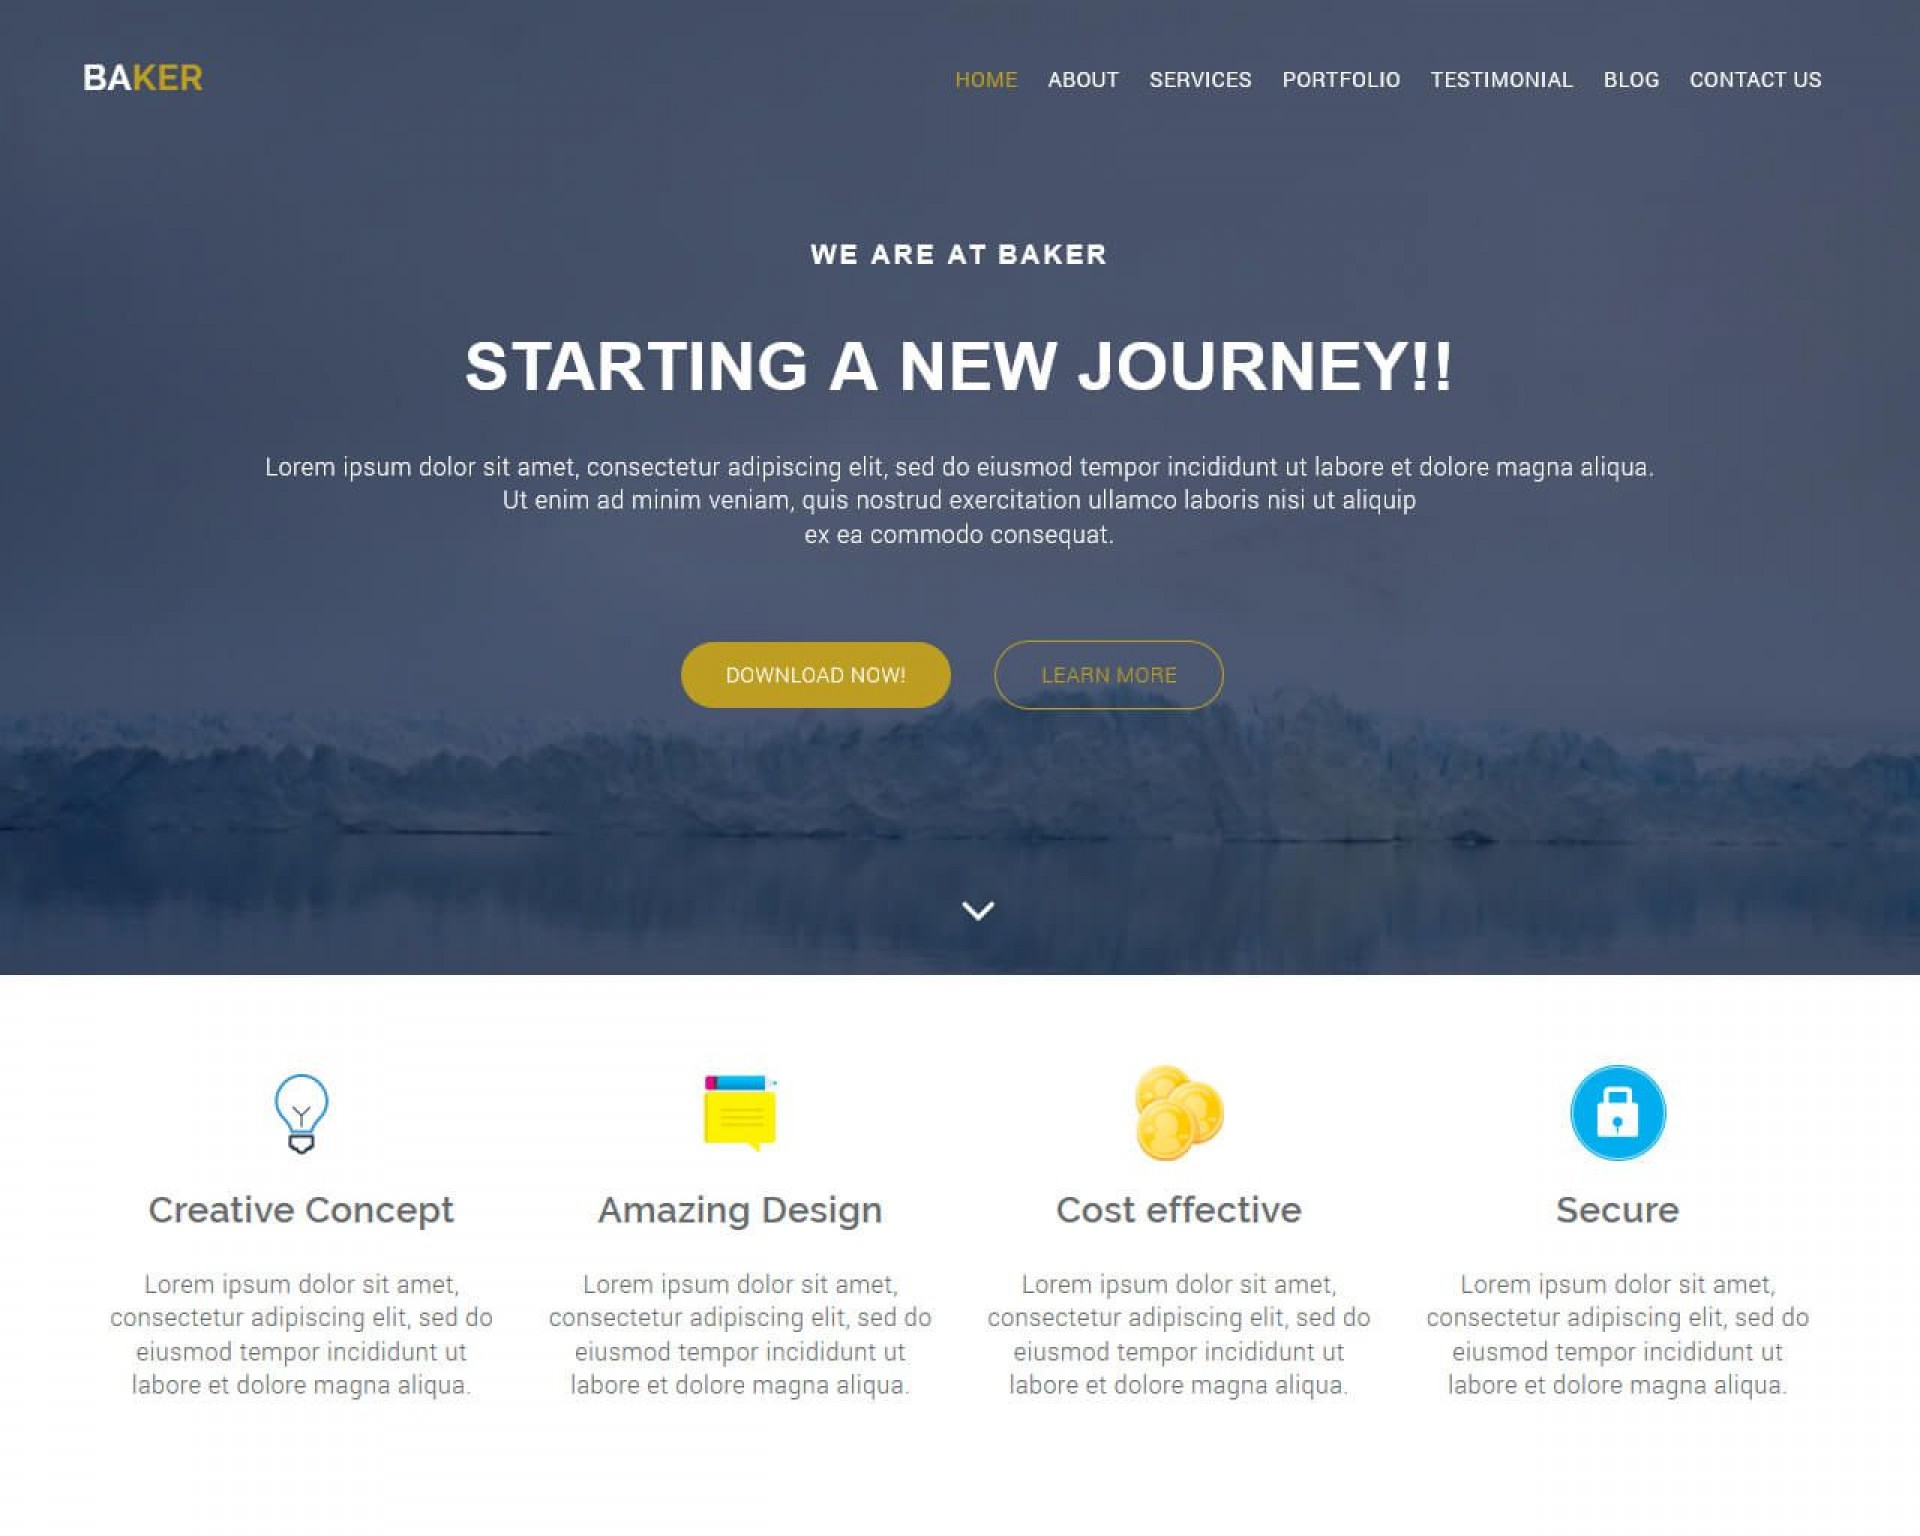 001 Fascinating Free Bootstrap Website Template High Resolution  Templates Responsive With Slider Download For Education Busines1920